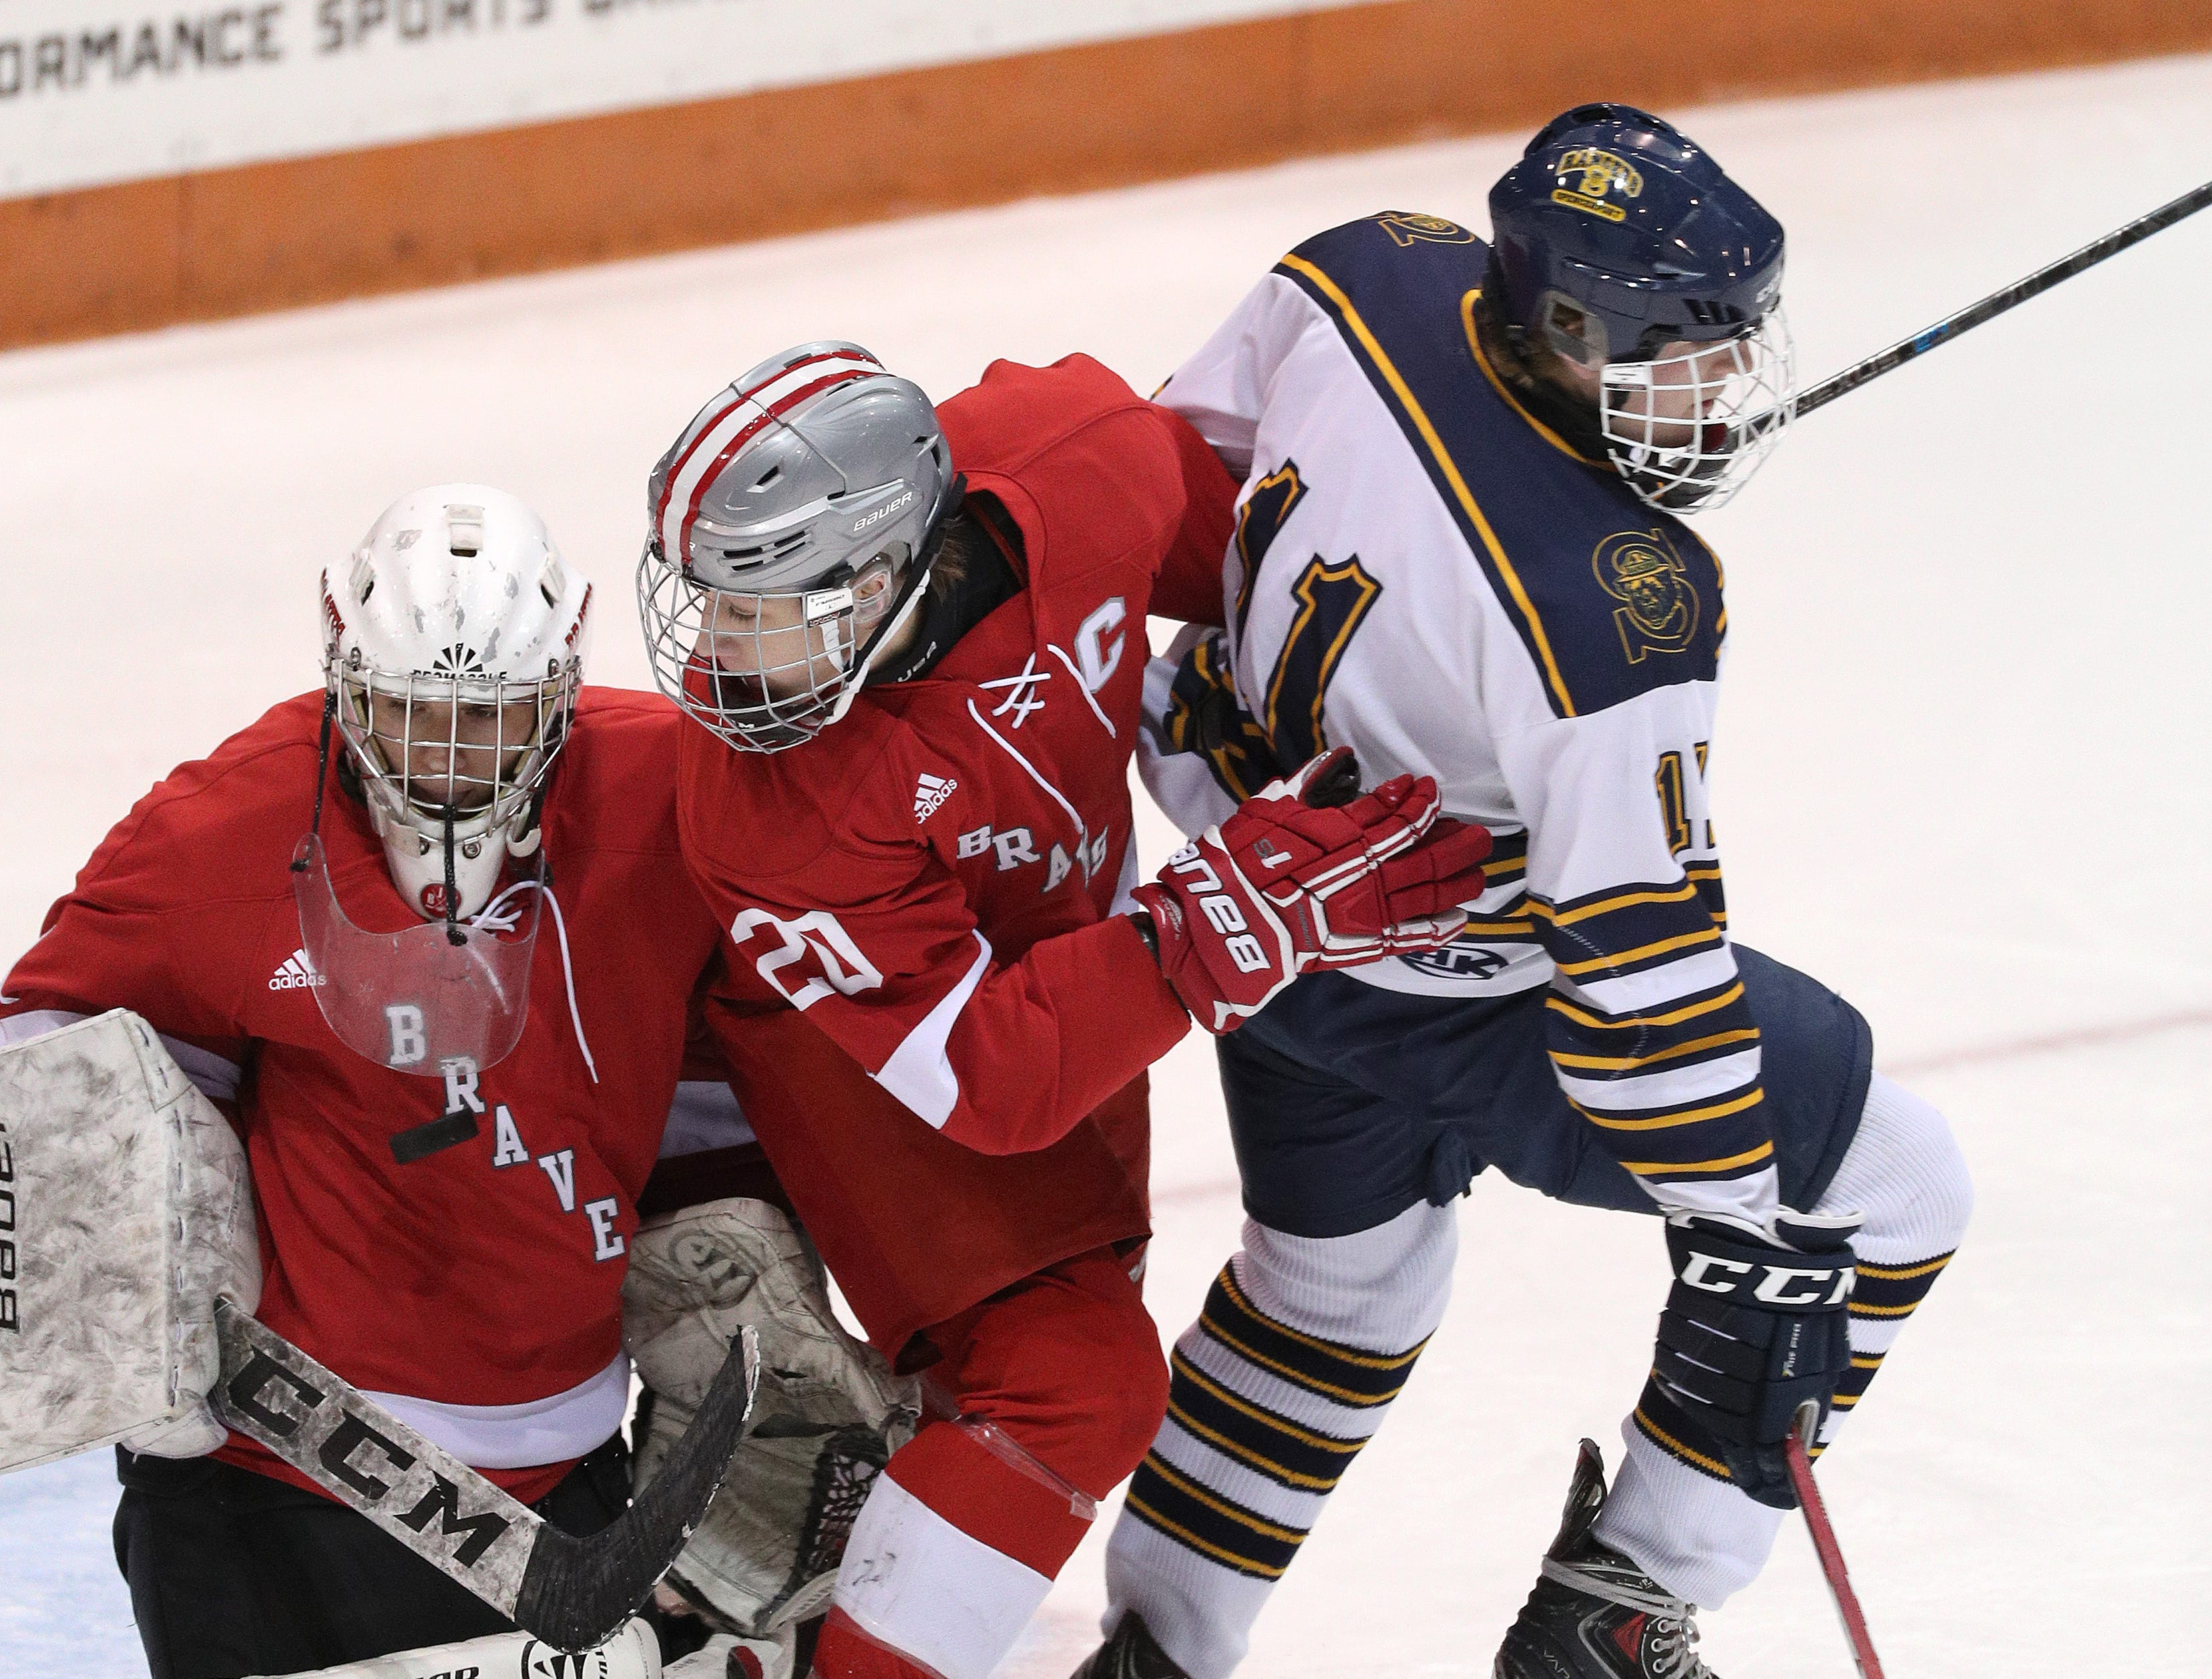 Canandaigua goalie Cade Chesler stops this shot as teammate Ryan Pitka tries to clear away Spencerport's Parker Scholand (11).